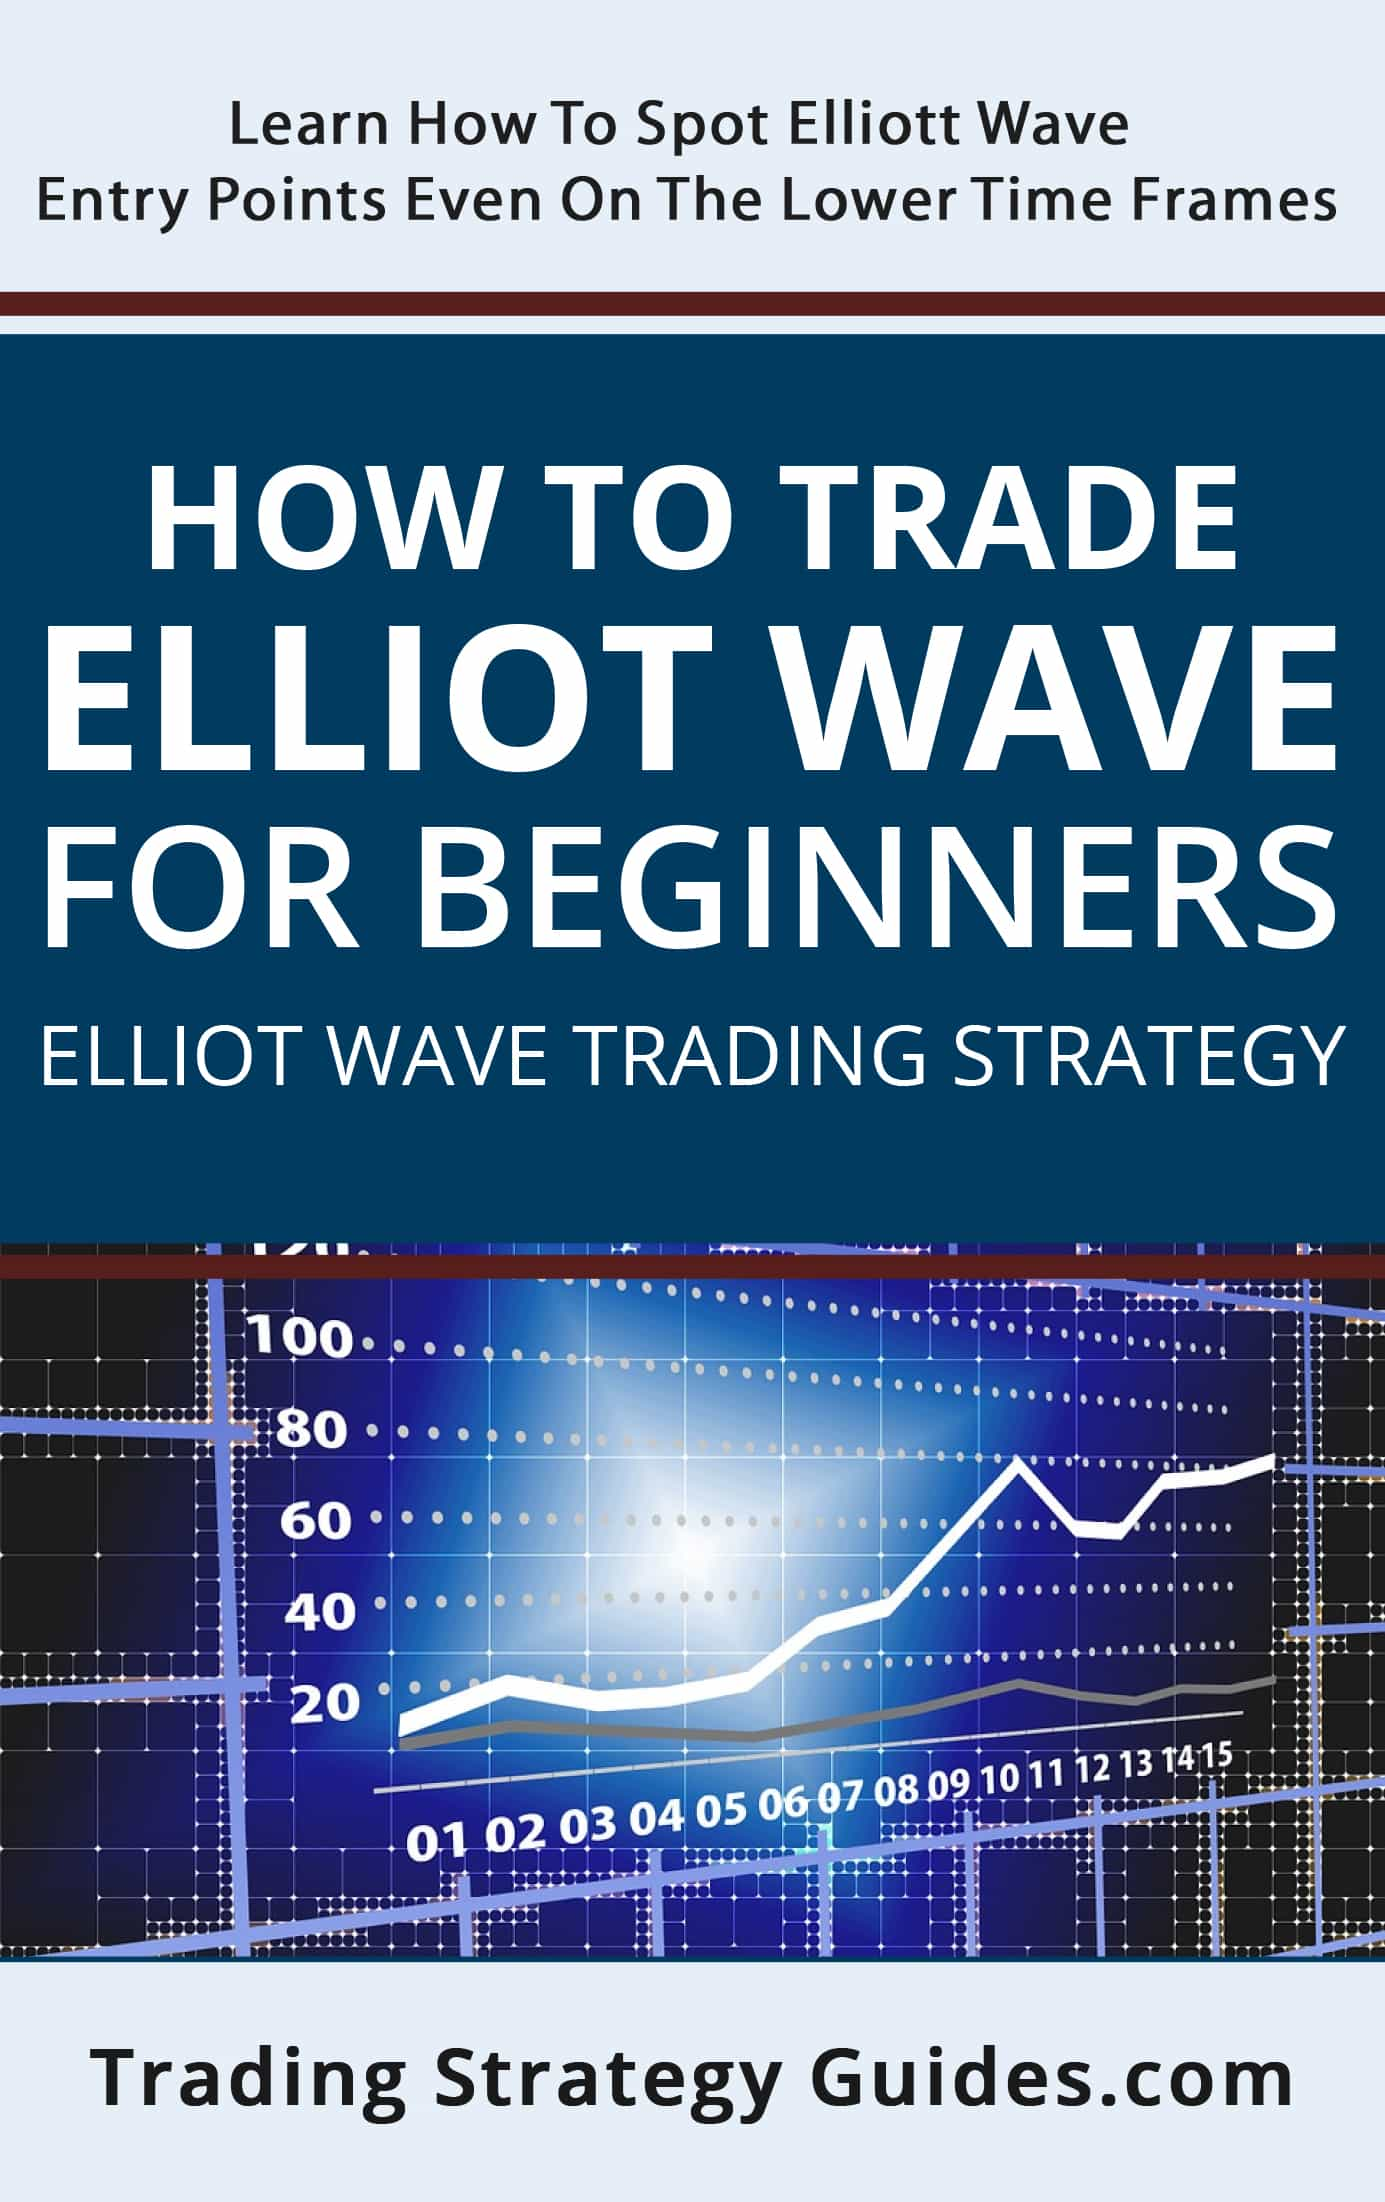 Wave trading strategies